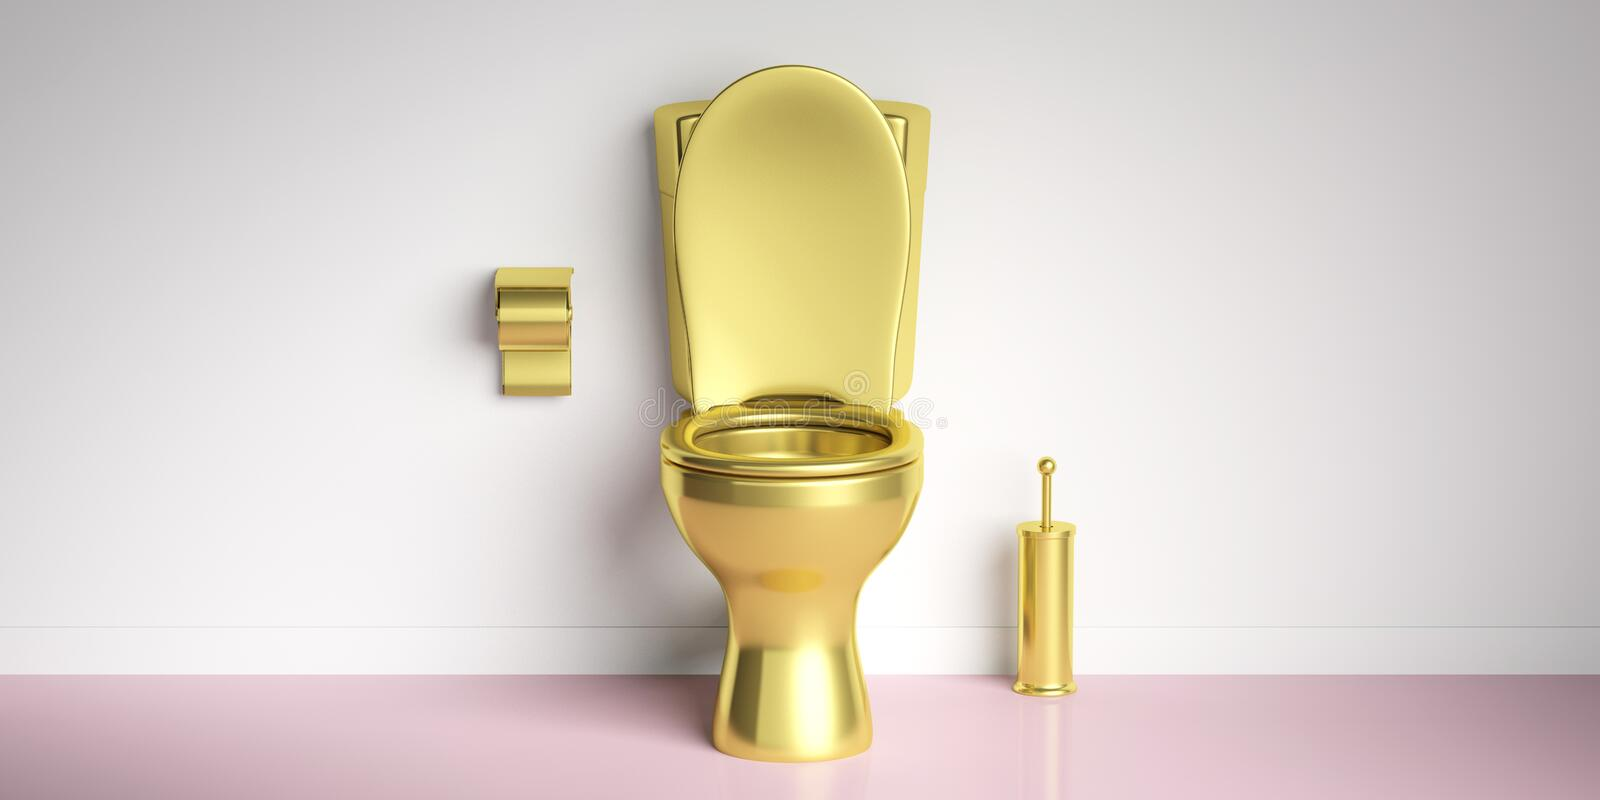 Golden toilet bowl on pink floor, white wall background, copy space. 3d illustration. Luxury toilets. Golden toilet bowl and accesories on pink floor, white wall vector illustration